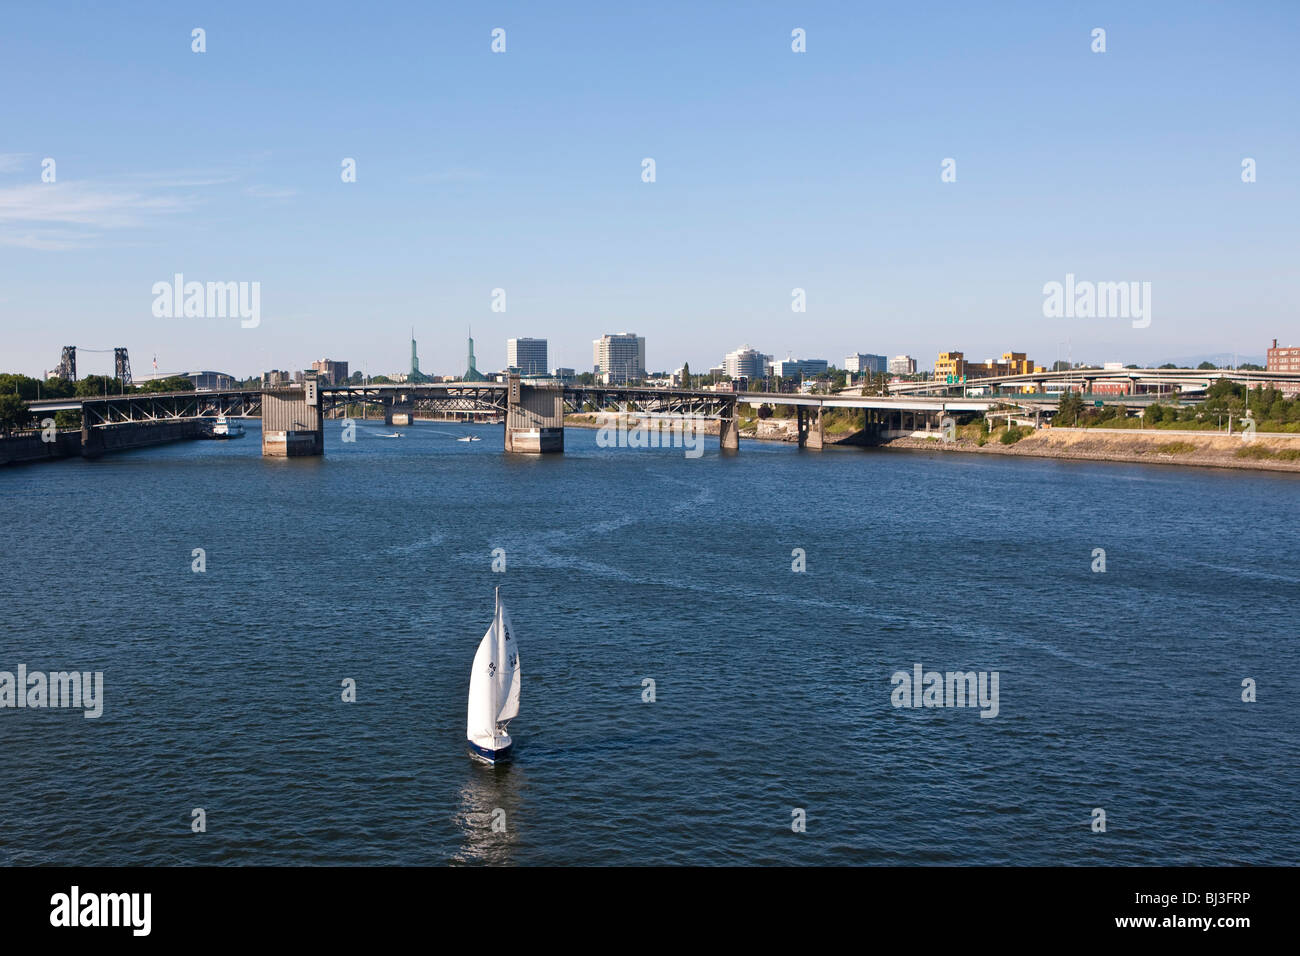 View of Portland, in the back the Morrison Bridge, Portland, Orgeon, USA - Stock Image